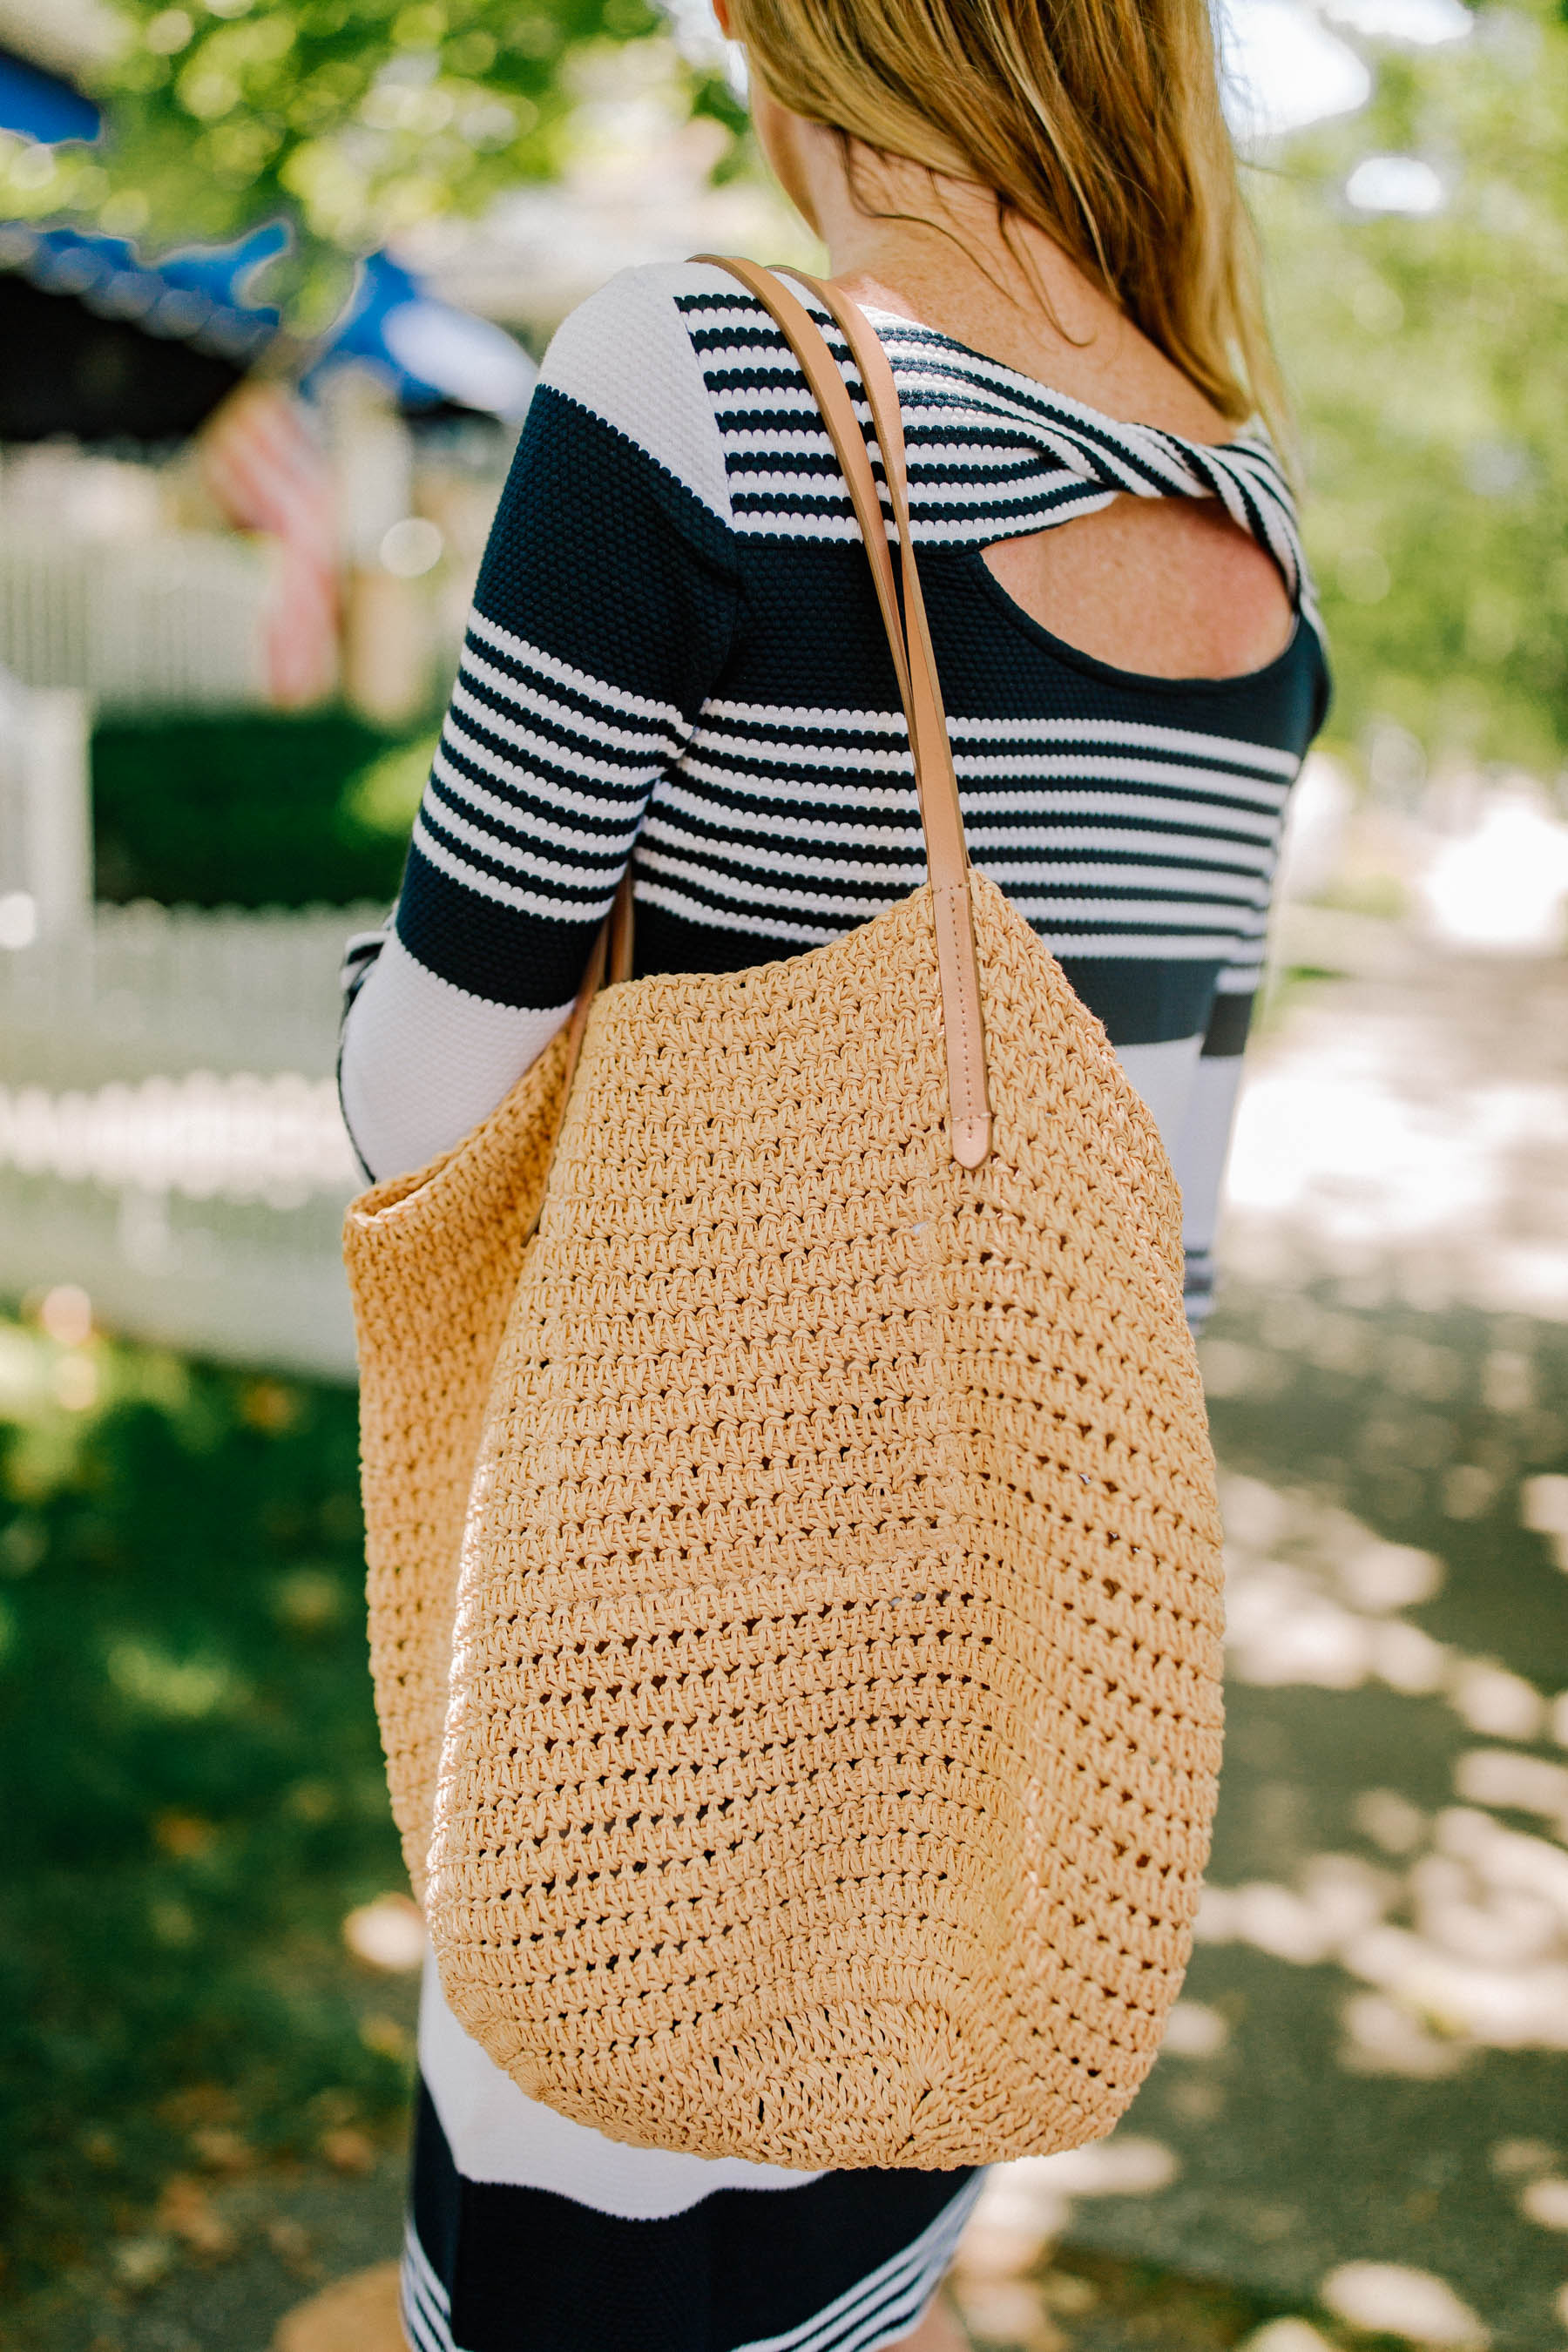 Never Version of the J.Crew Woven Tote